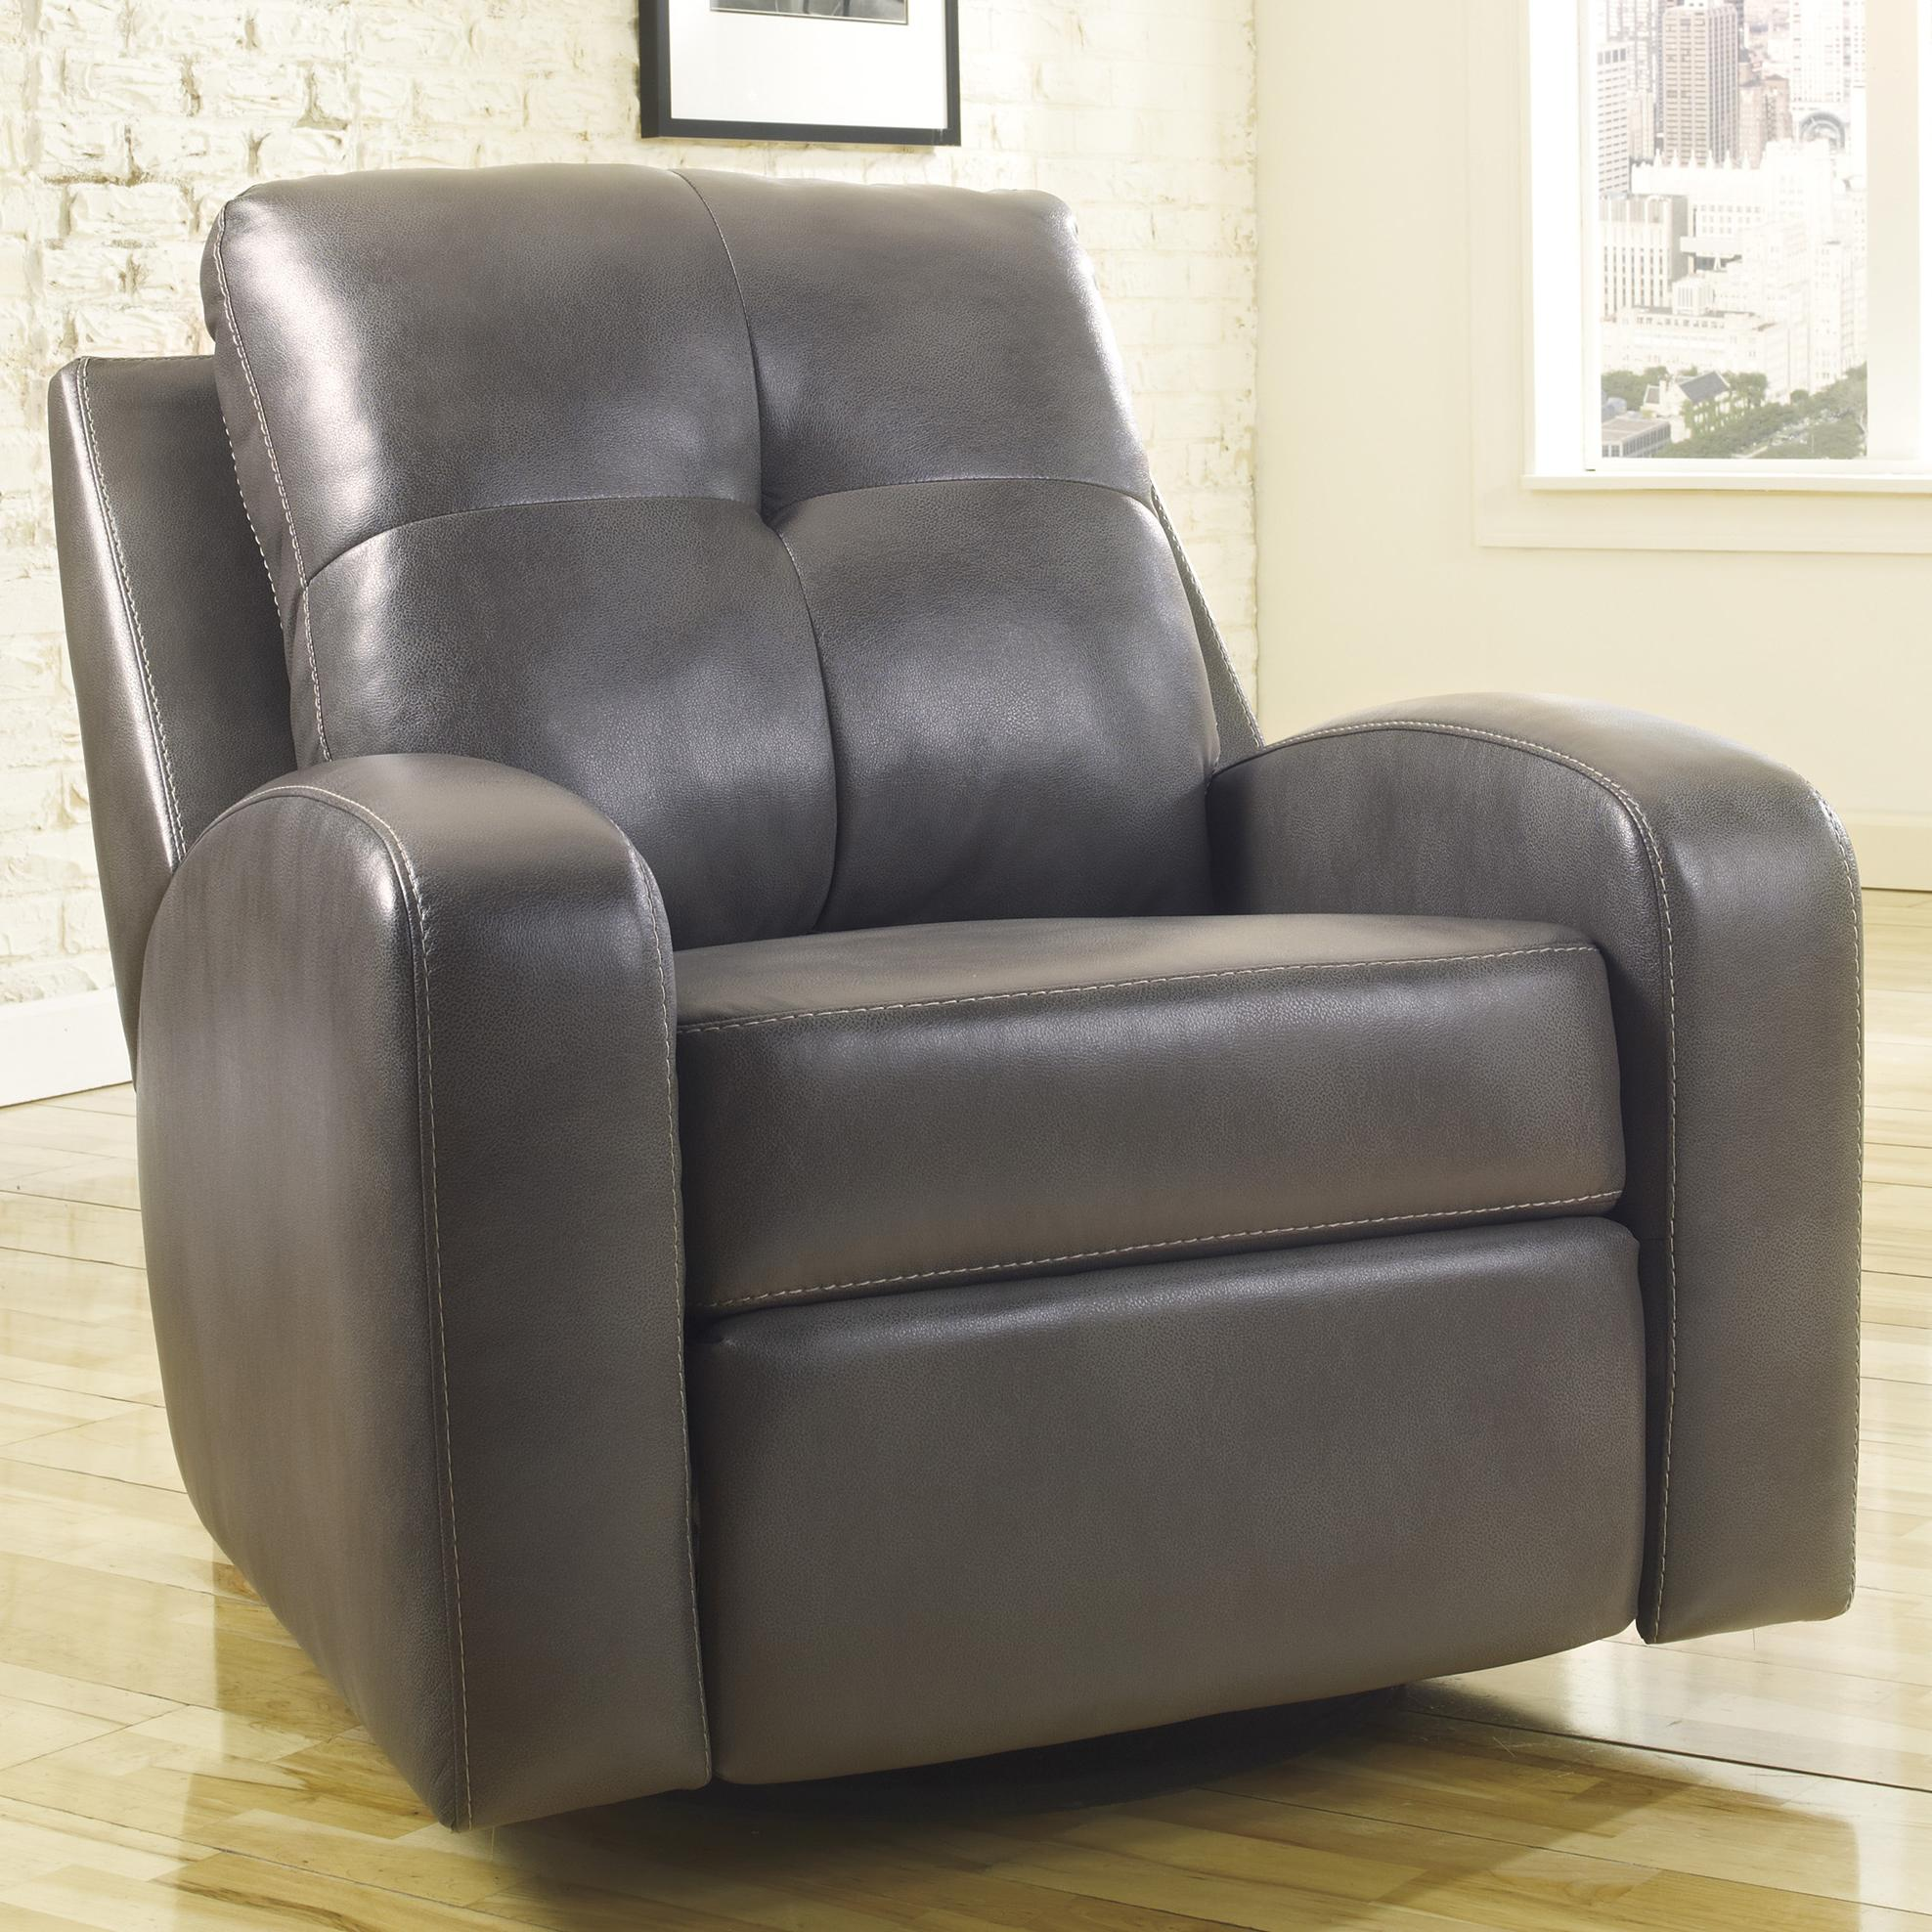 Signature Design by Ashley Mannix DuraBlend - Gray Swivel Glider Recliner - Item Number: 2140461